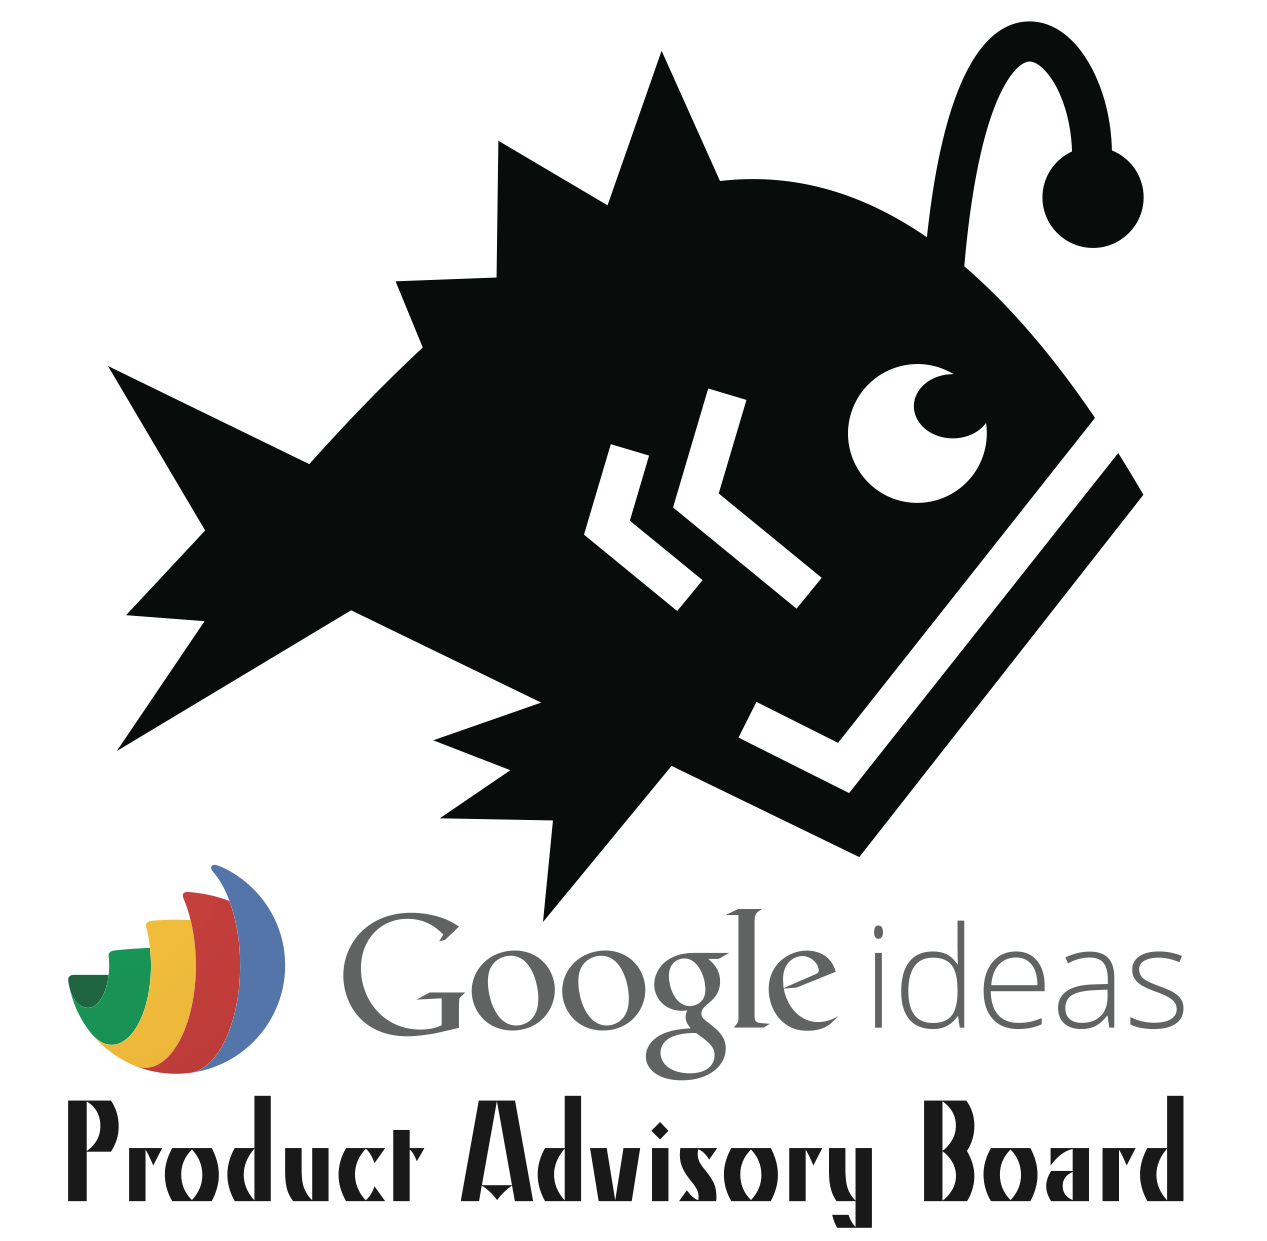 Google Ideas Product Advisory Board Logo